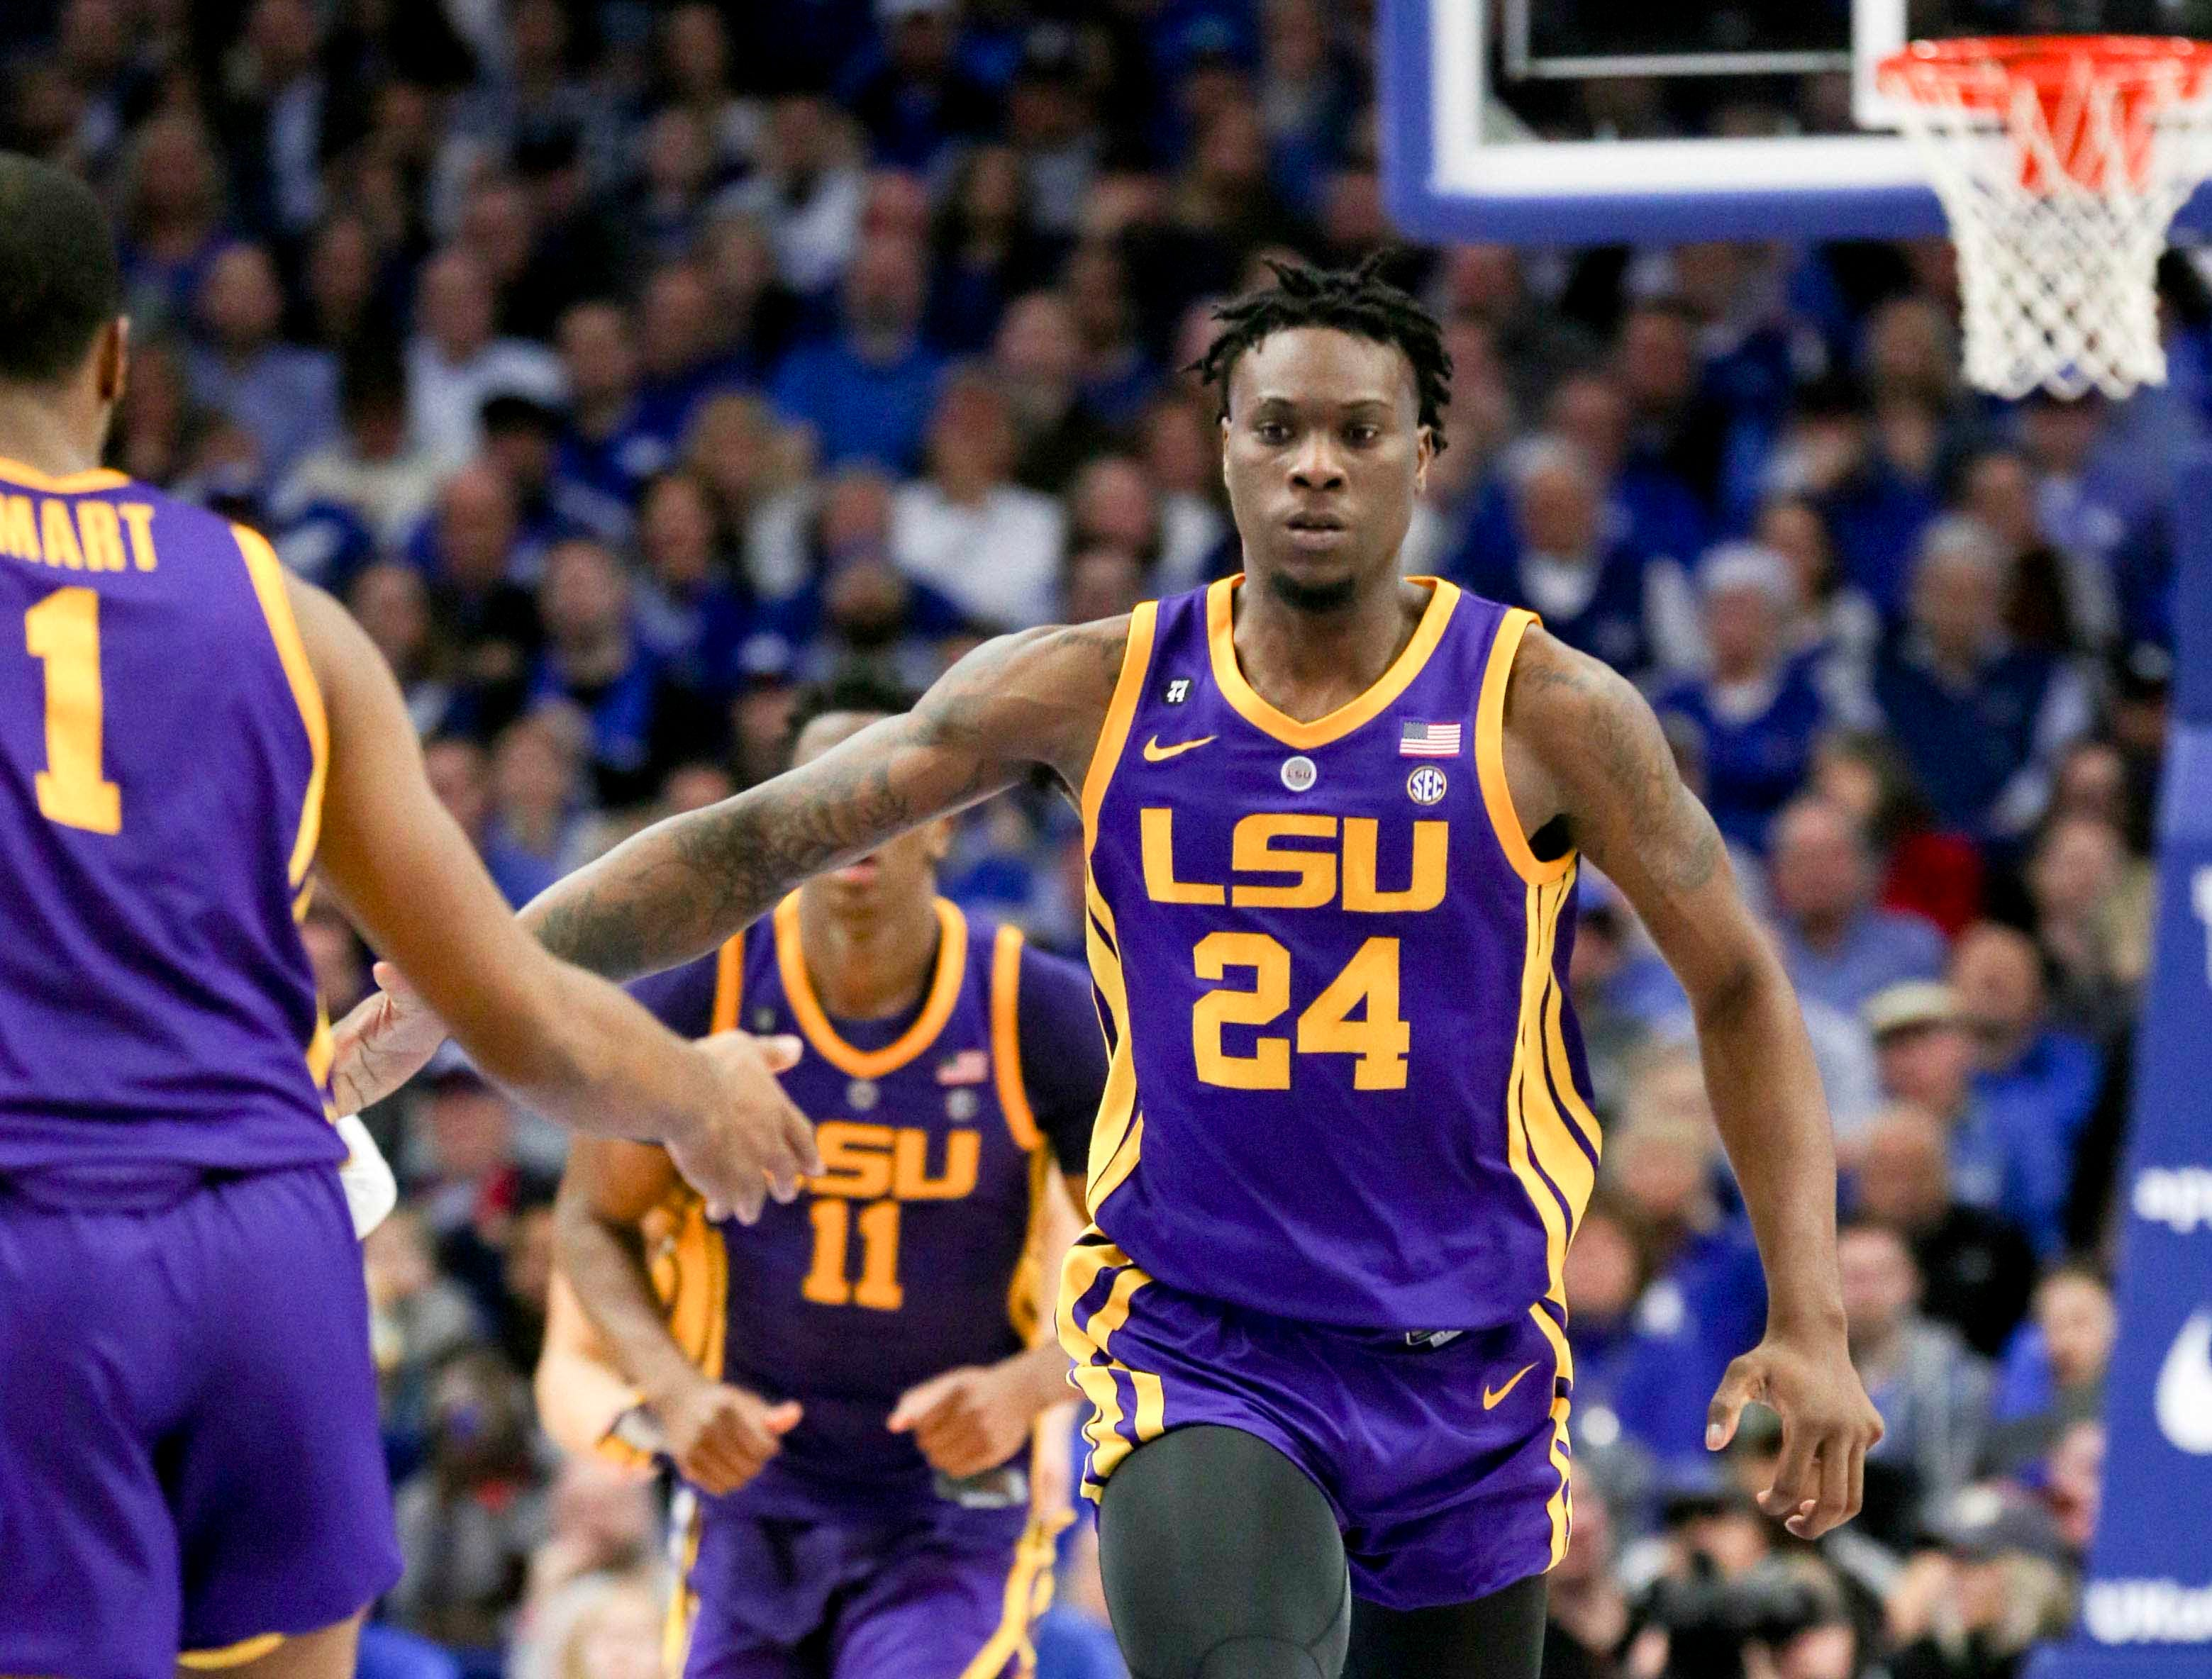 Feb 12, 2019; Lexington, KY, USA; LSU Tigers forward Emmitt Williams (24) reacts during the game against the Kentucky Wildcats in the second half at Rupp Arena. Mandatory Credit: Mark Zerof-USA TODAY Sports